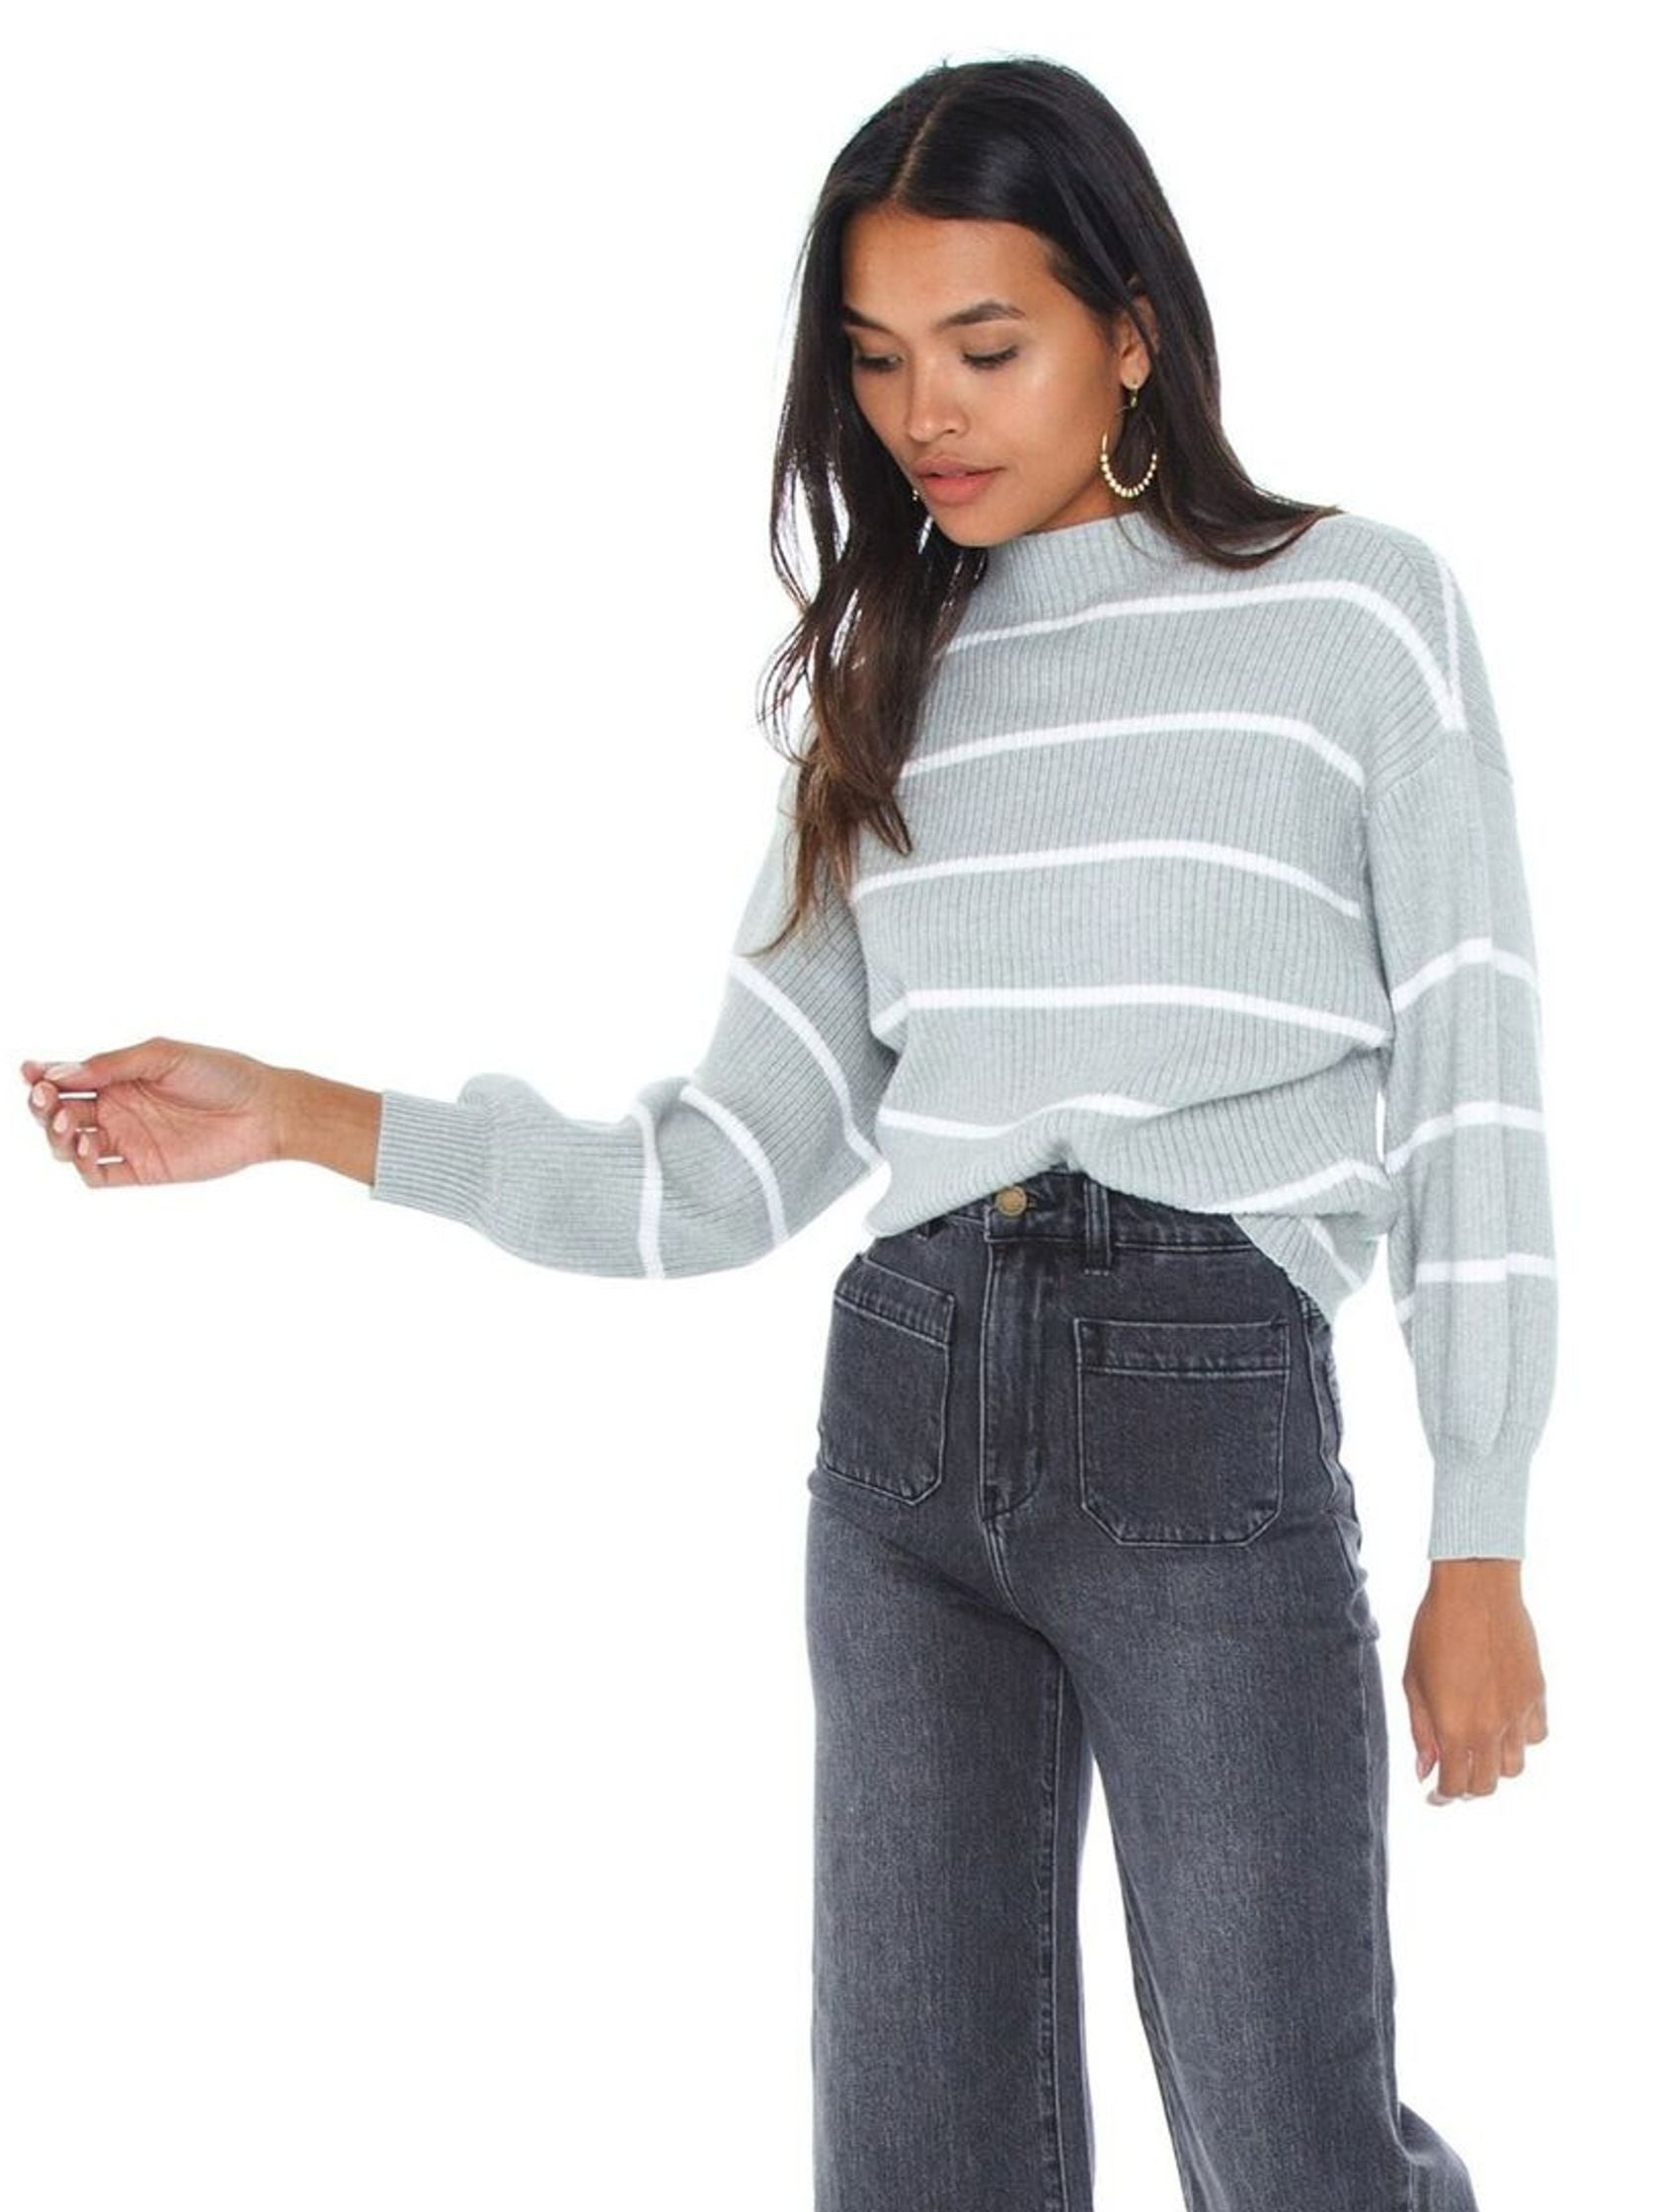 Women wearing a sweater rental from Line & Dot called Alder Stripe Sweater